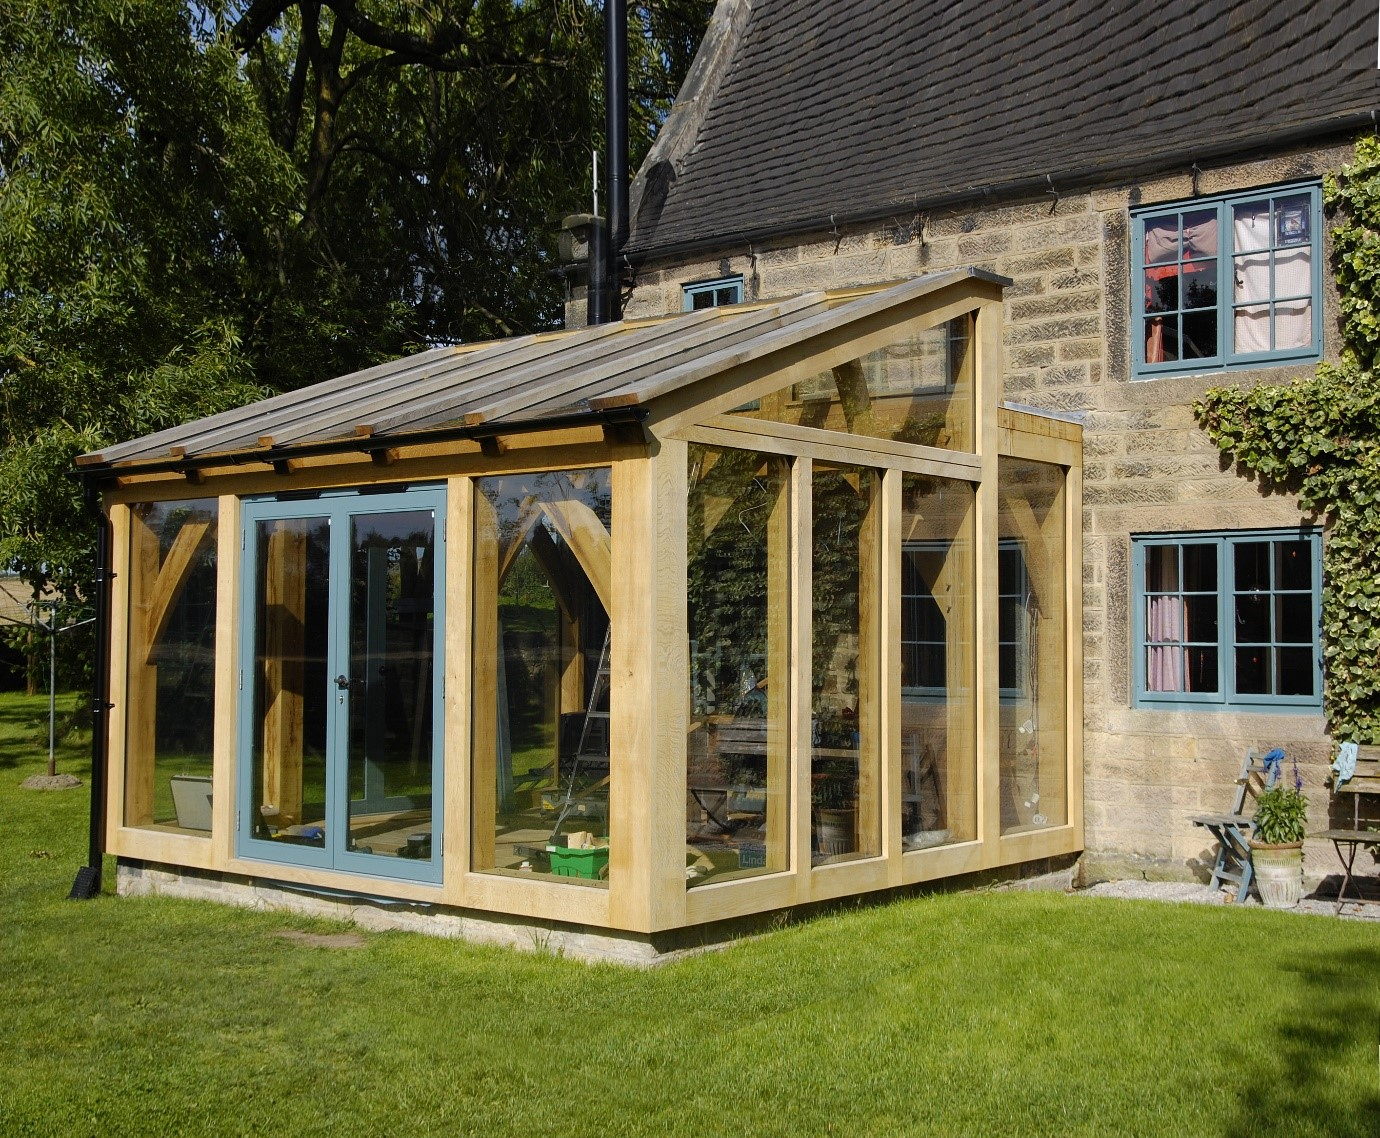 Frequently asked questions about building with oak